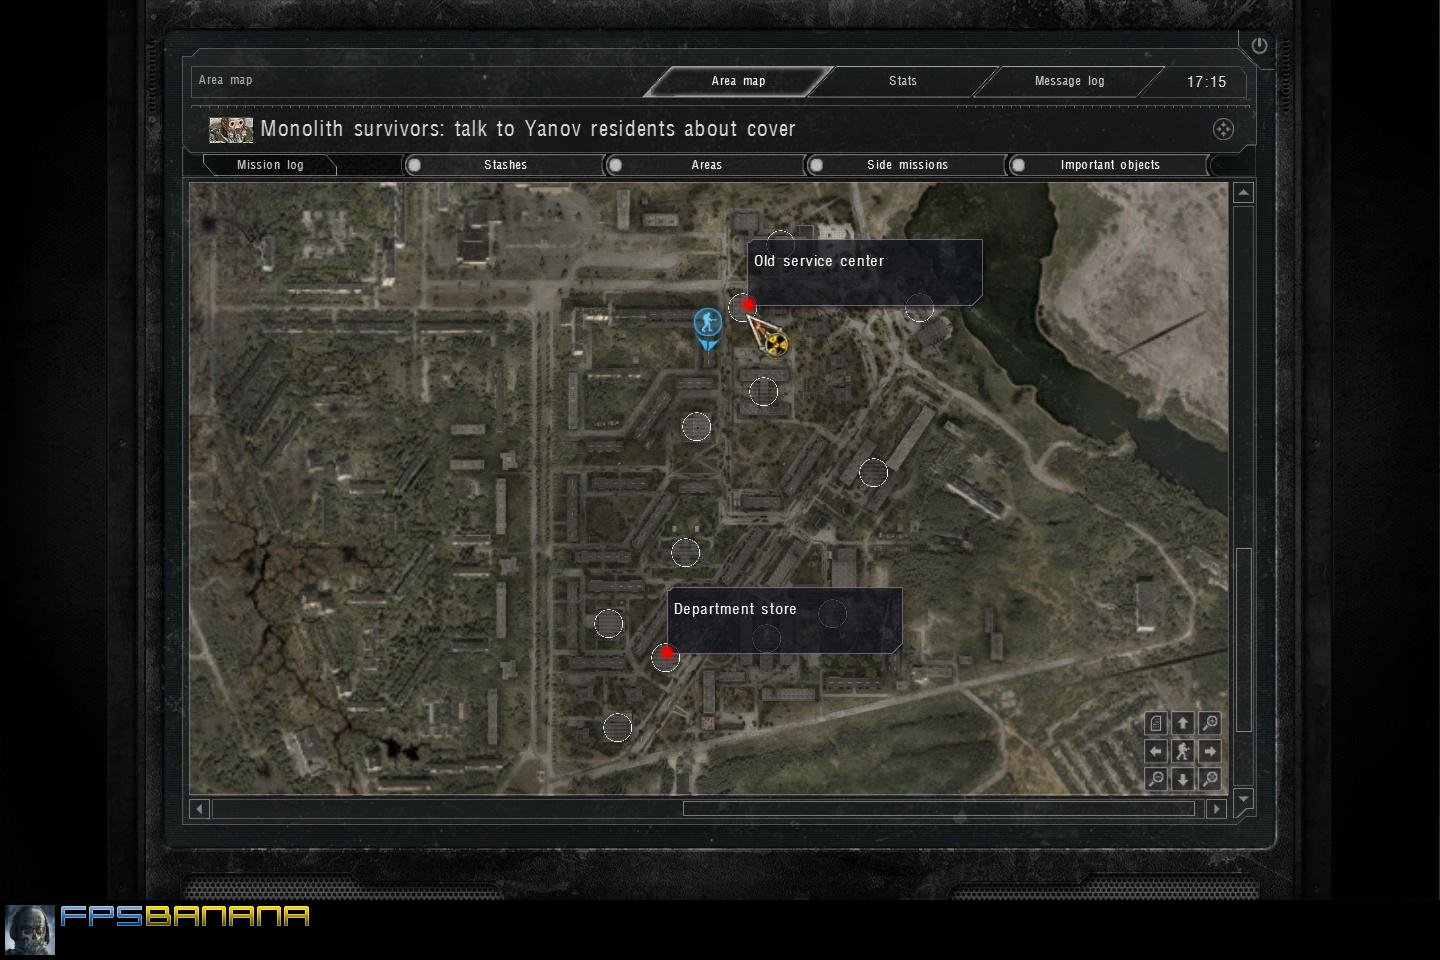 Where to find instruments for calibration: Call of Pripyat